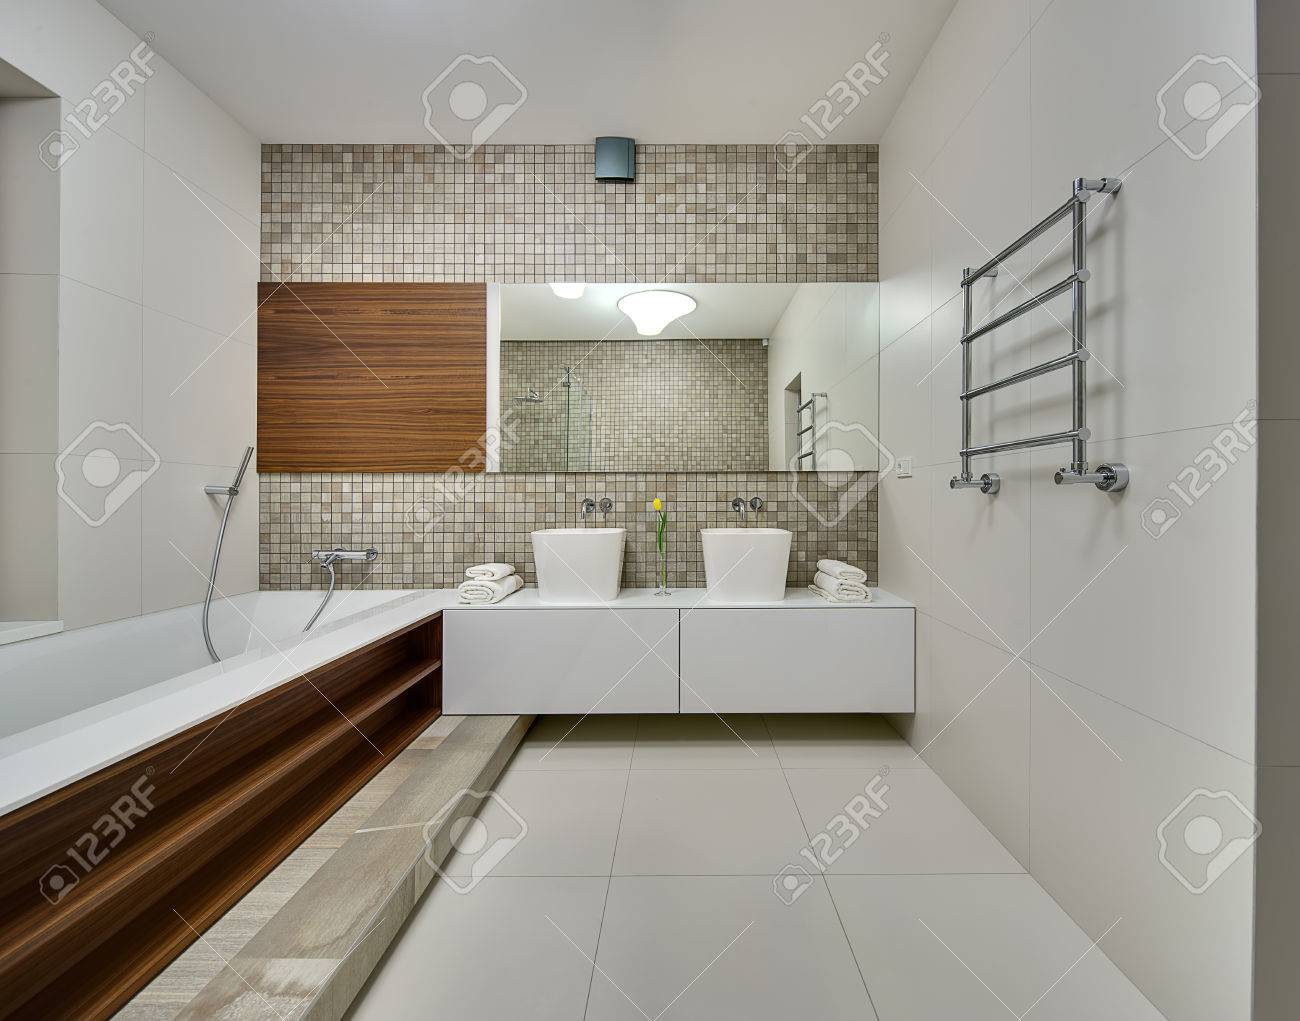 Bathroom In A Modern Style With Light Tiles On The Walls And.. Stock ...